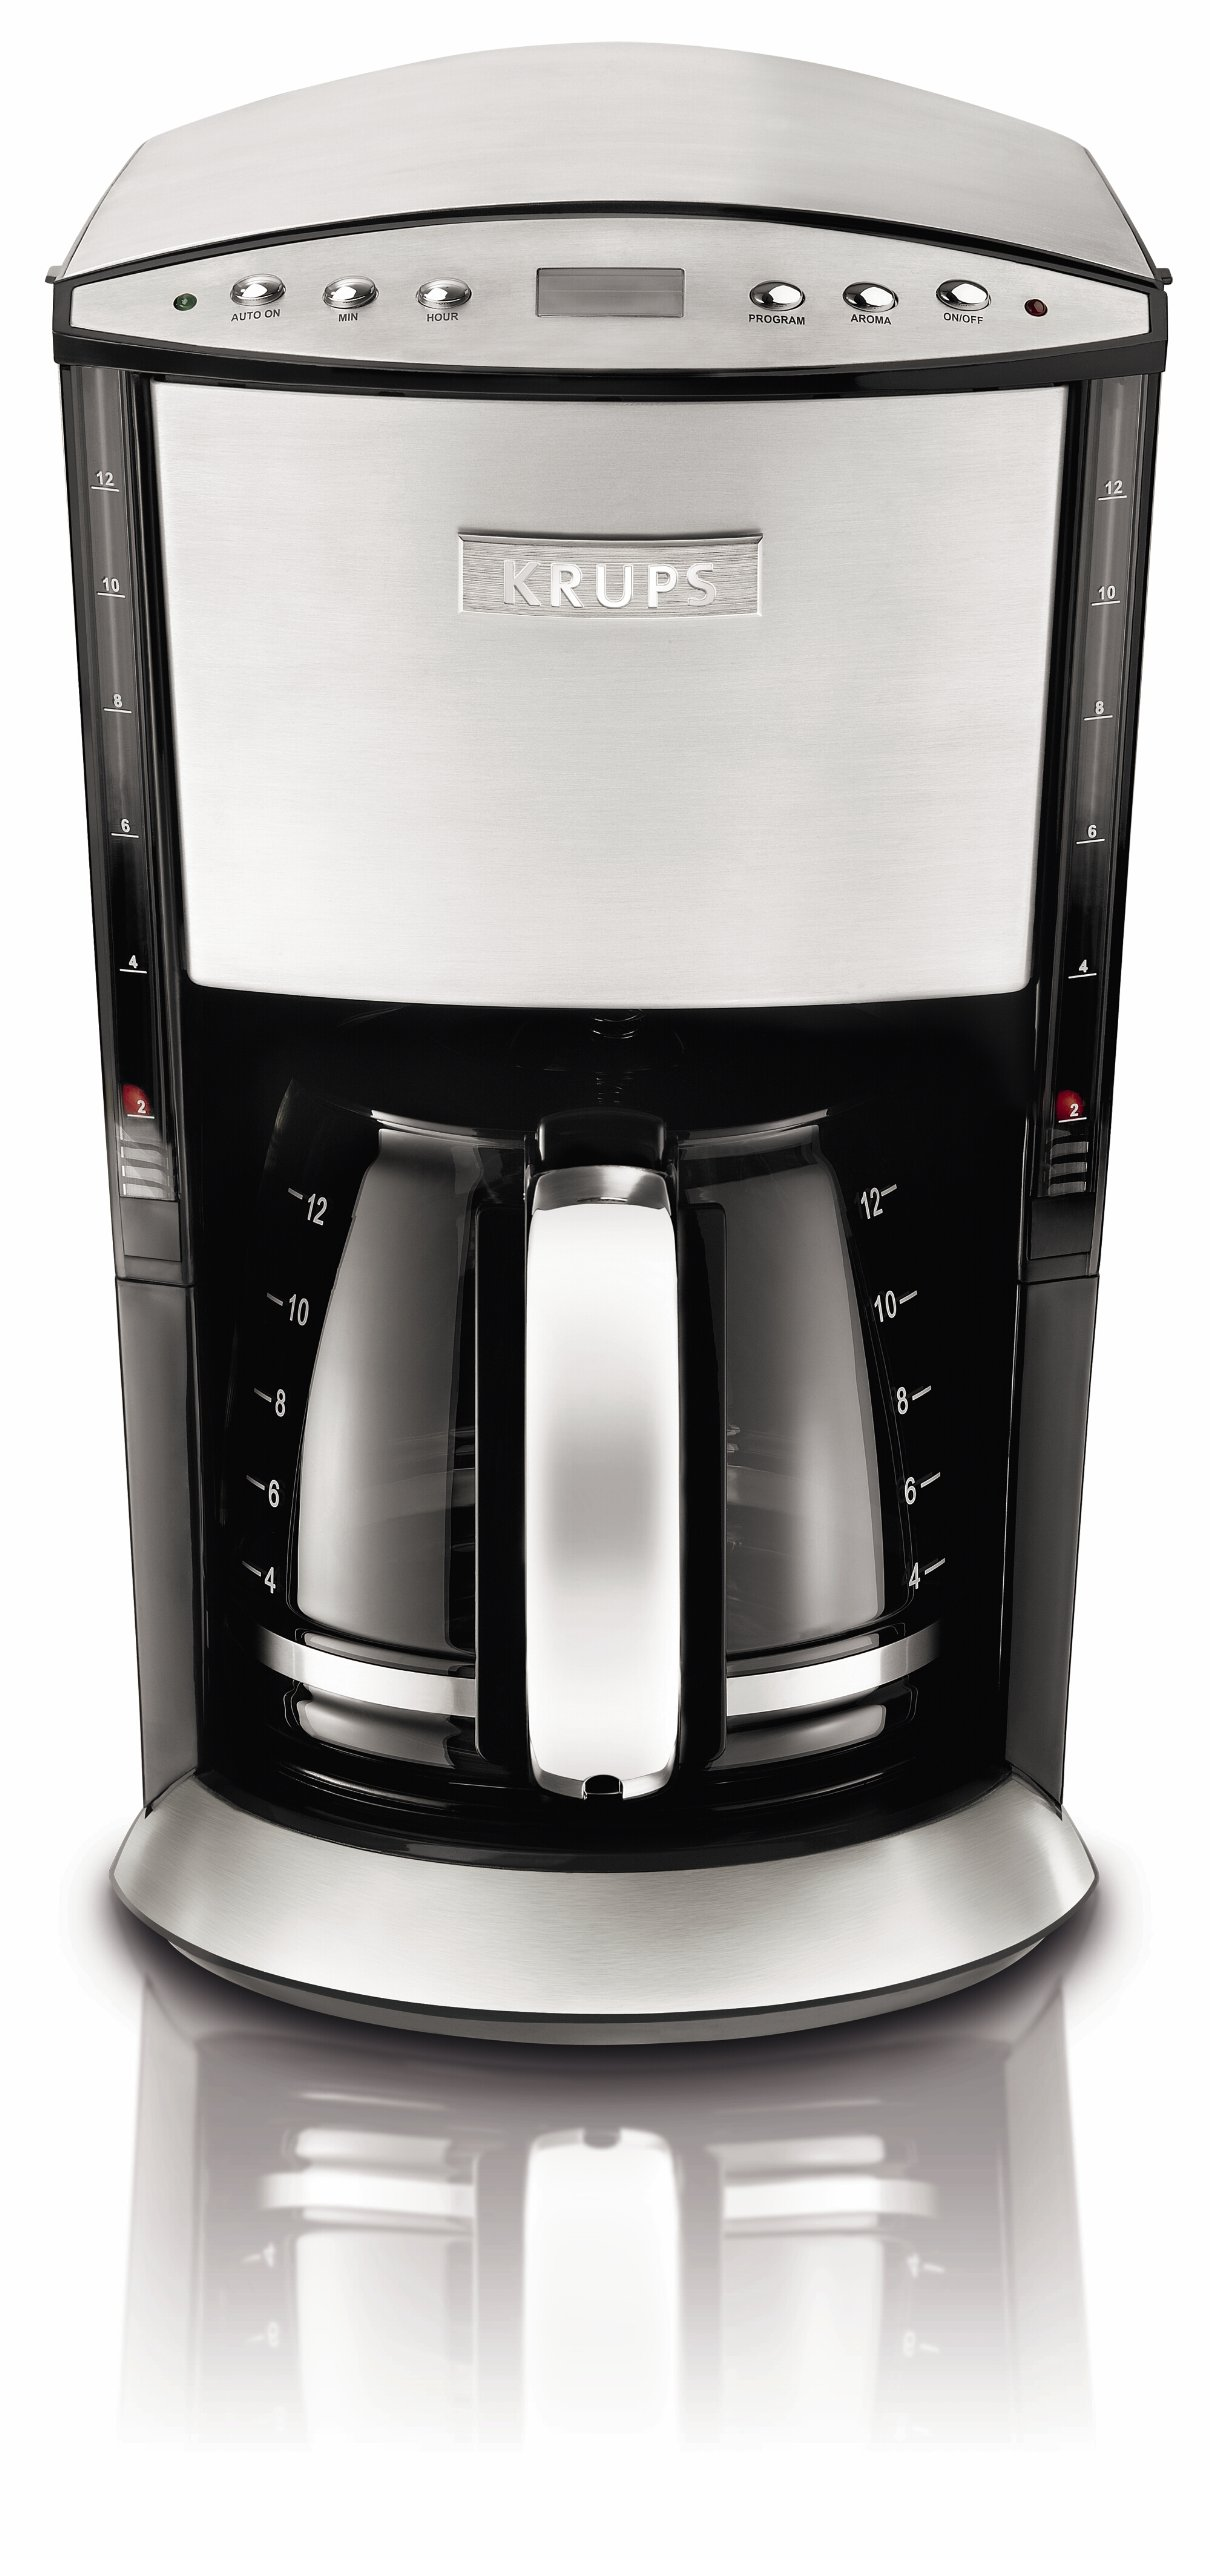 KRUPS KM720D50 Programmable Coffee Maker with Stainless Steel Housing, 12-Cup, Silver